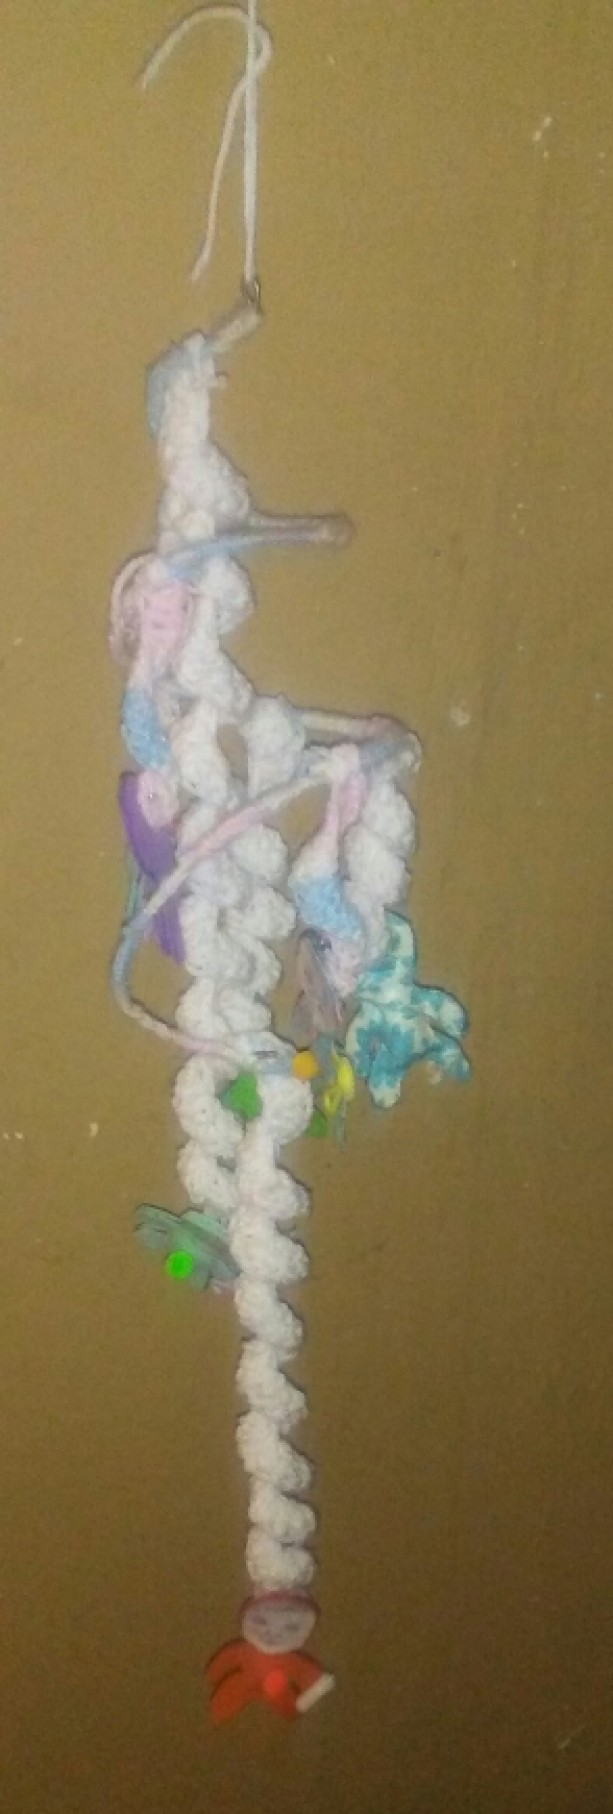 Crocheted mobile with felt babies attached.